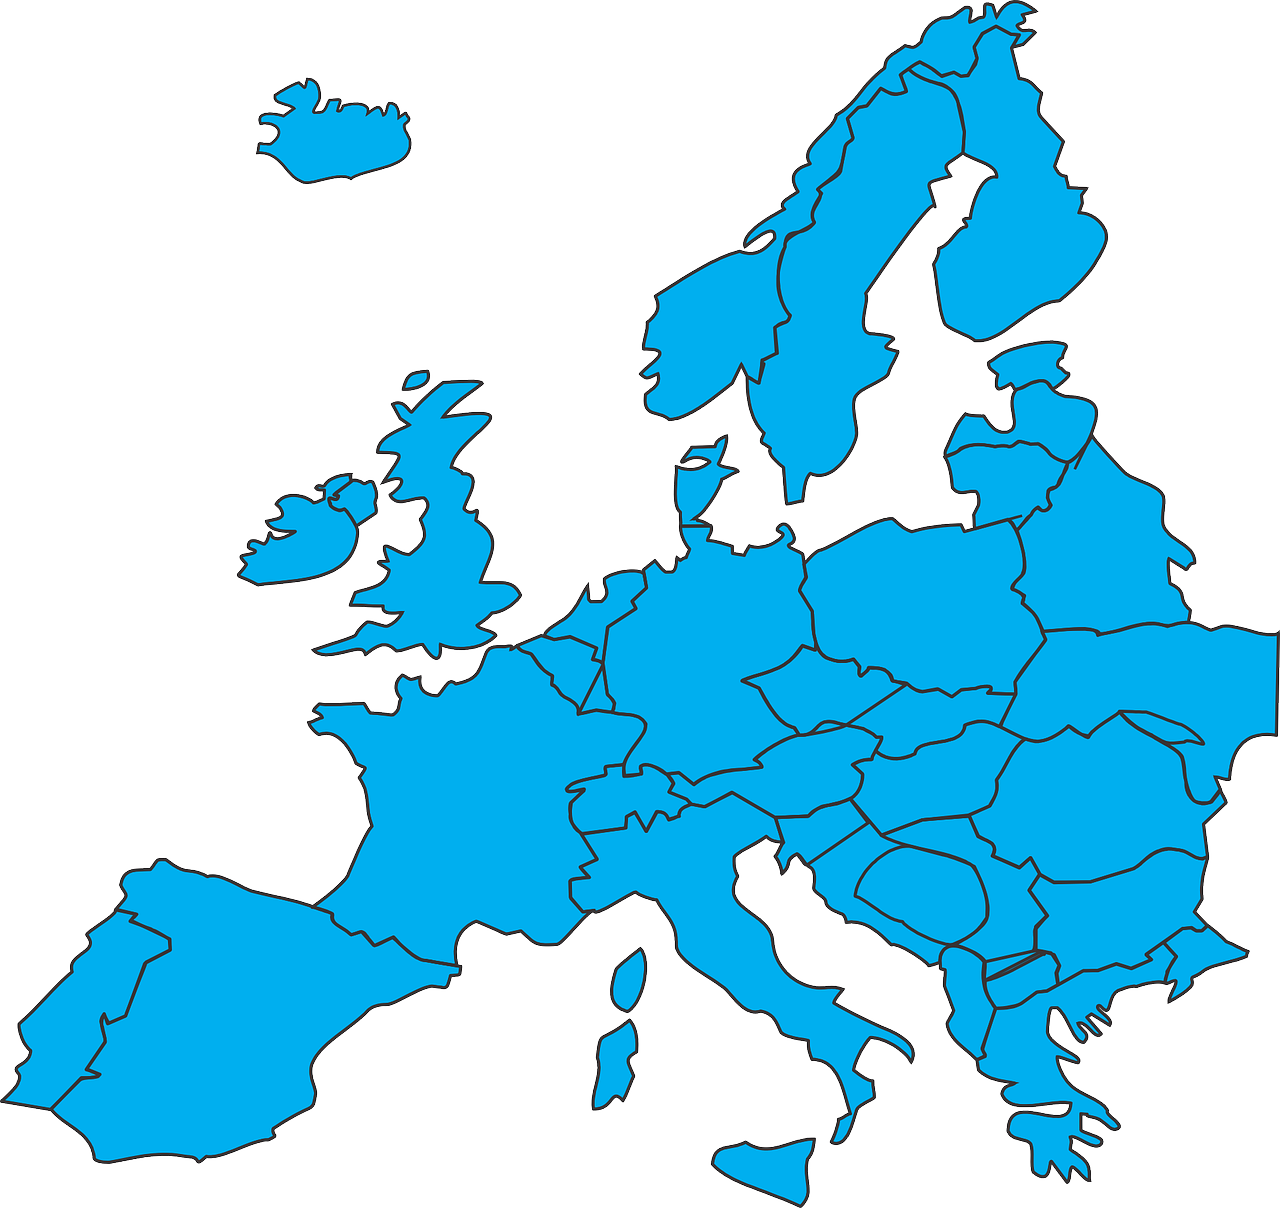 Europe countries blue transparent. Germany clipart map